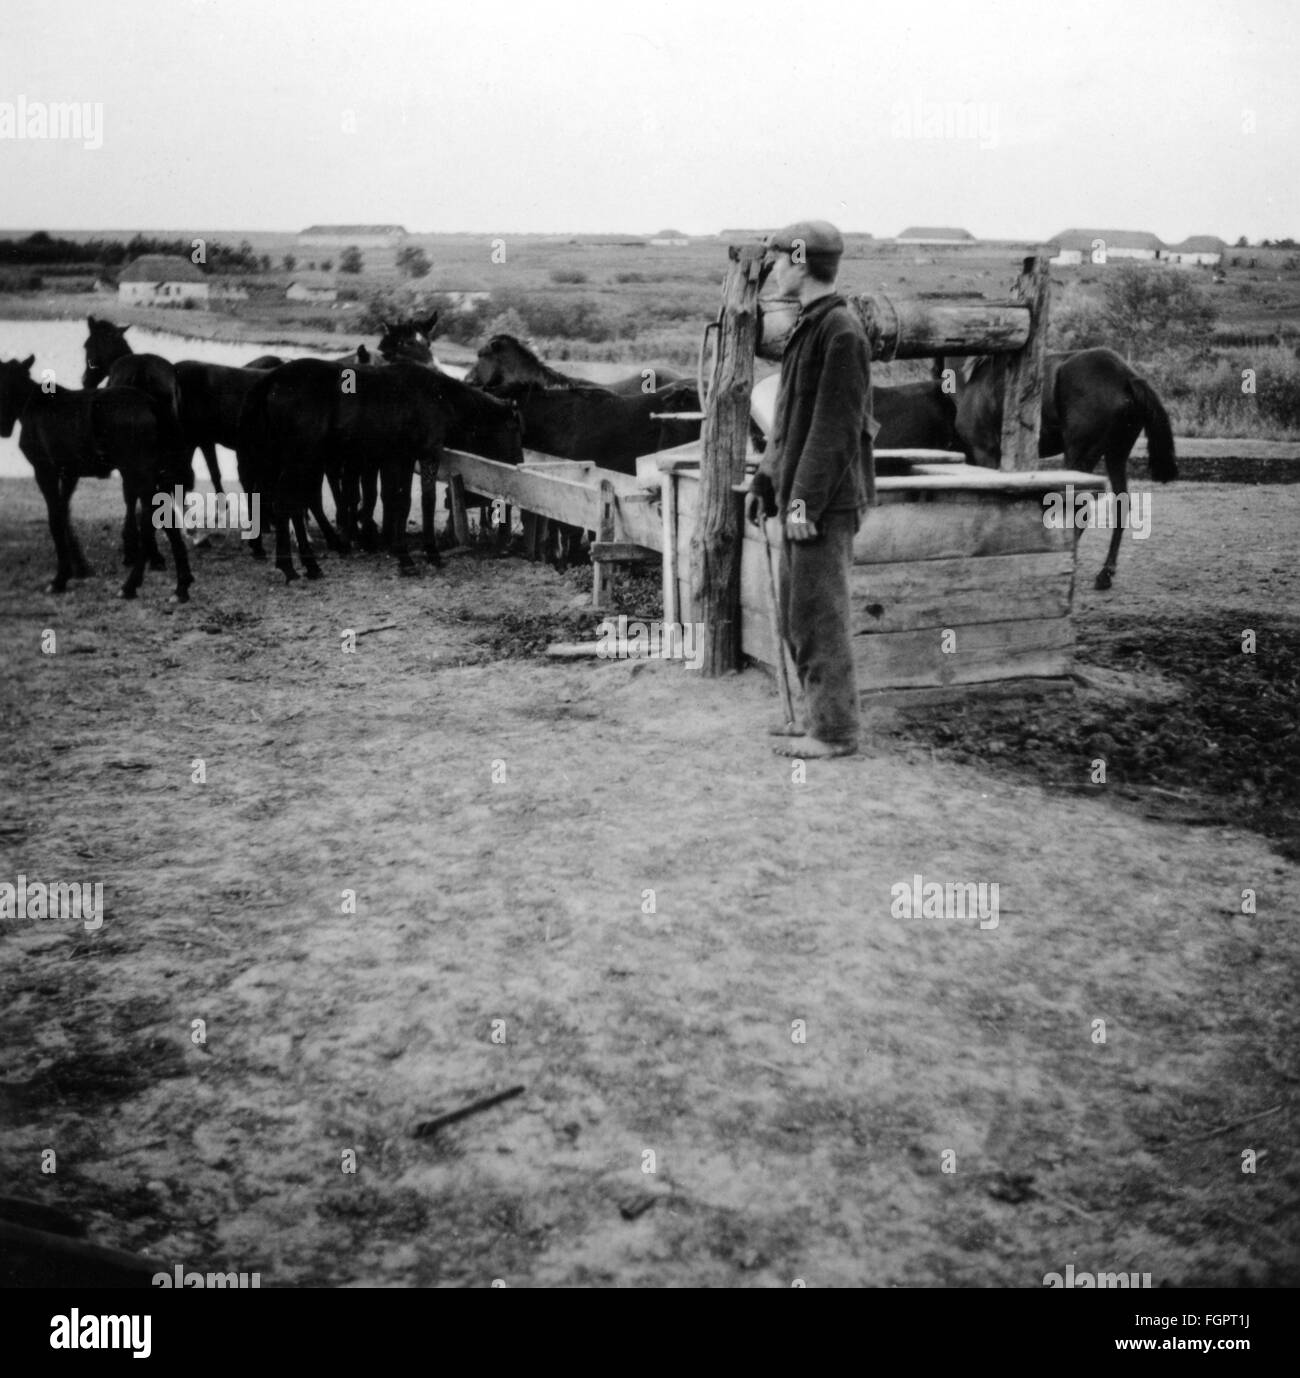 events, Second World War / WWII, Soviet Union, civilian population, Ukrainian peasant with horses, photo taken by - Stock Image